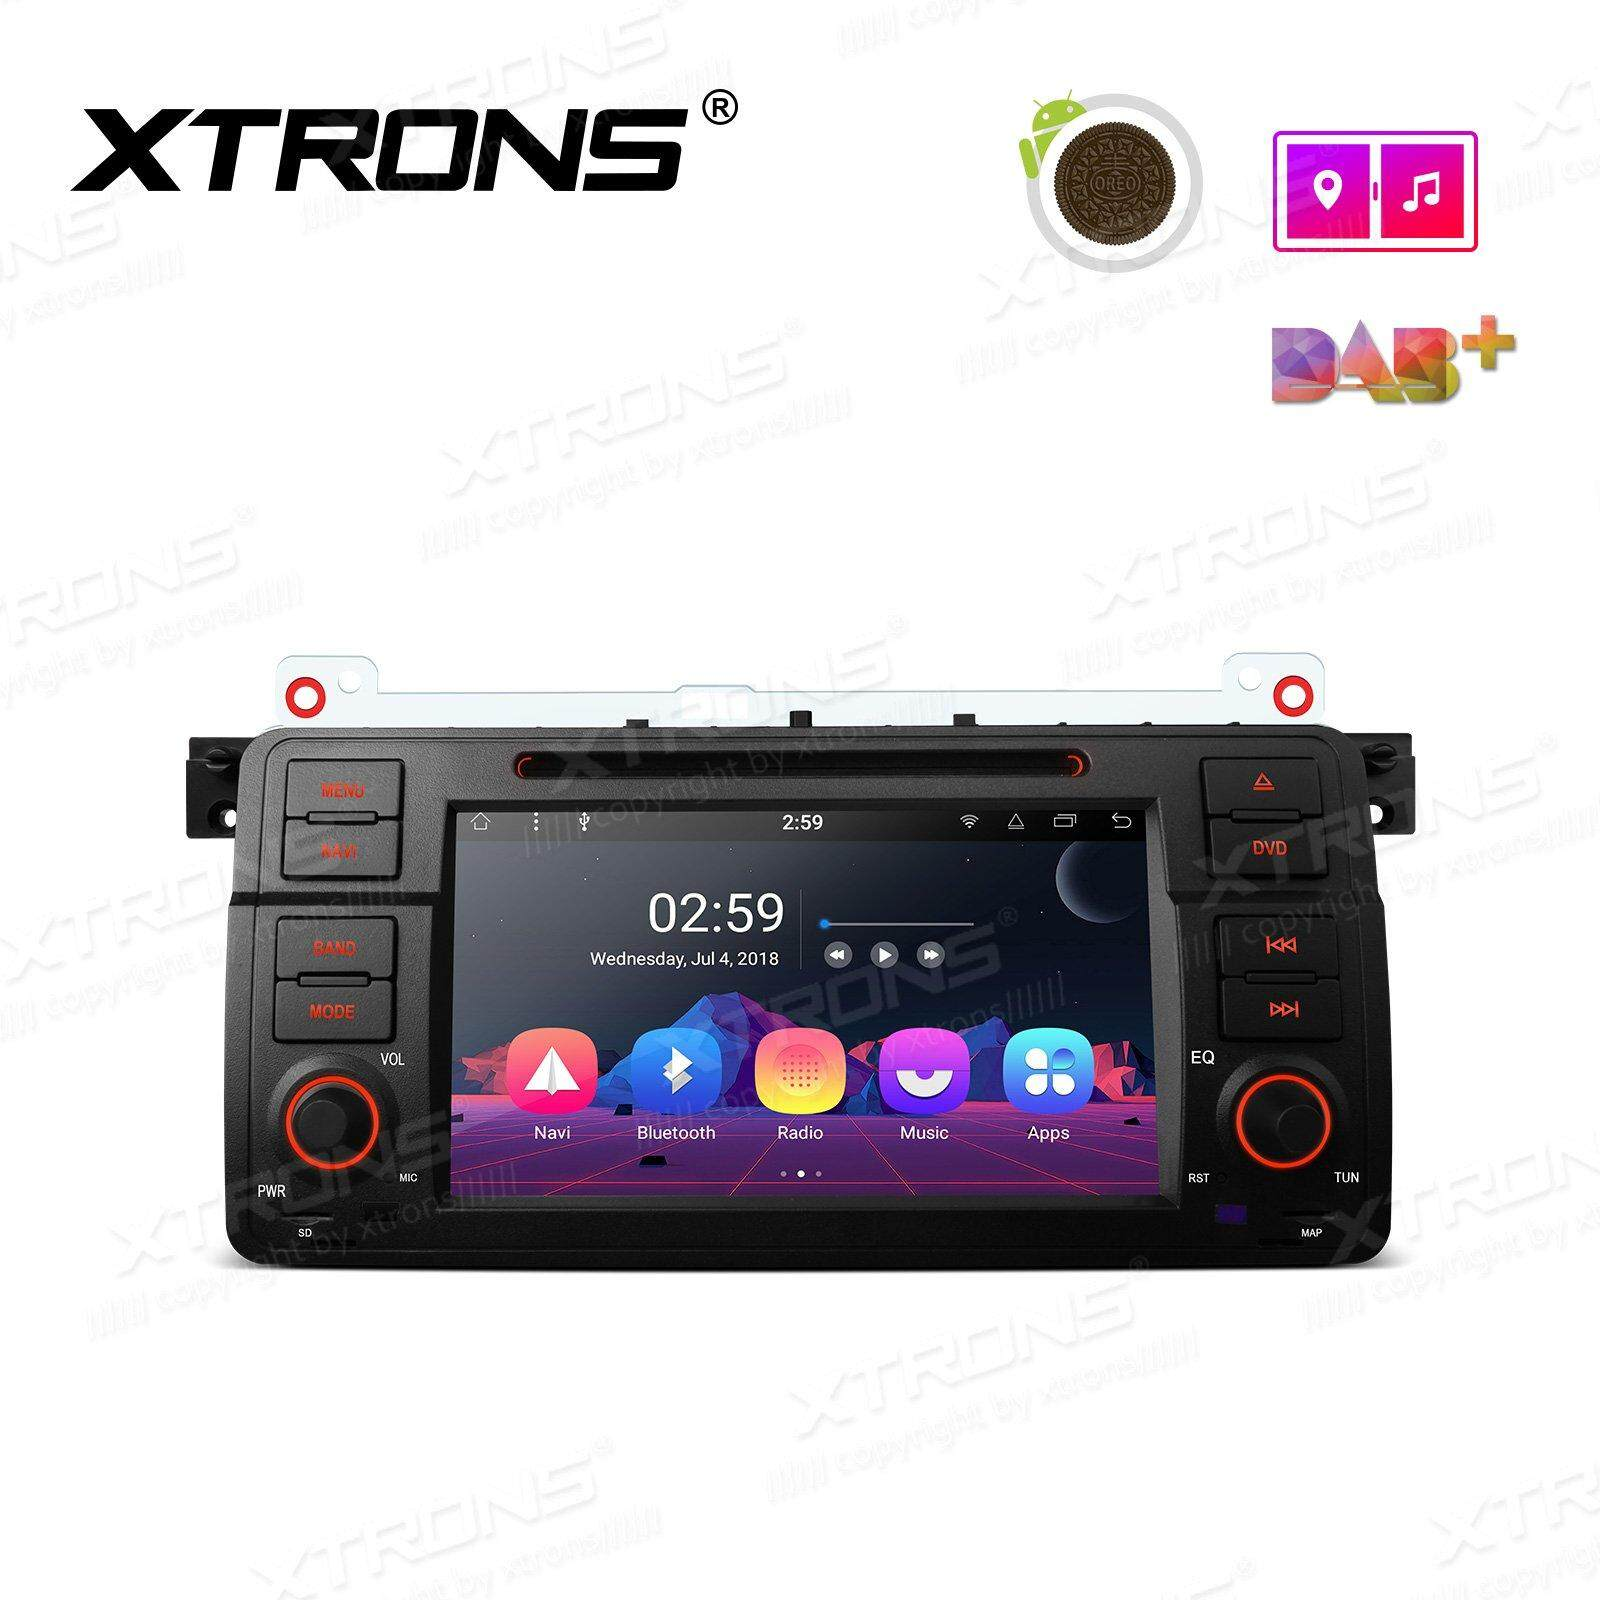 "XTRONS 7"" Android 8.1 Octa Core Car Stereo Radio DVD Player Single Din Head Unit GPS Navigator Bluetooth 5.0 DAB 4G OBD USB SD Port for BMW E46"